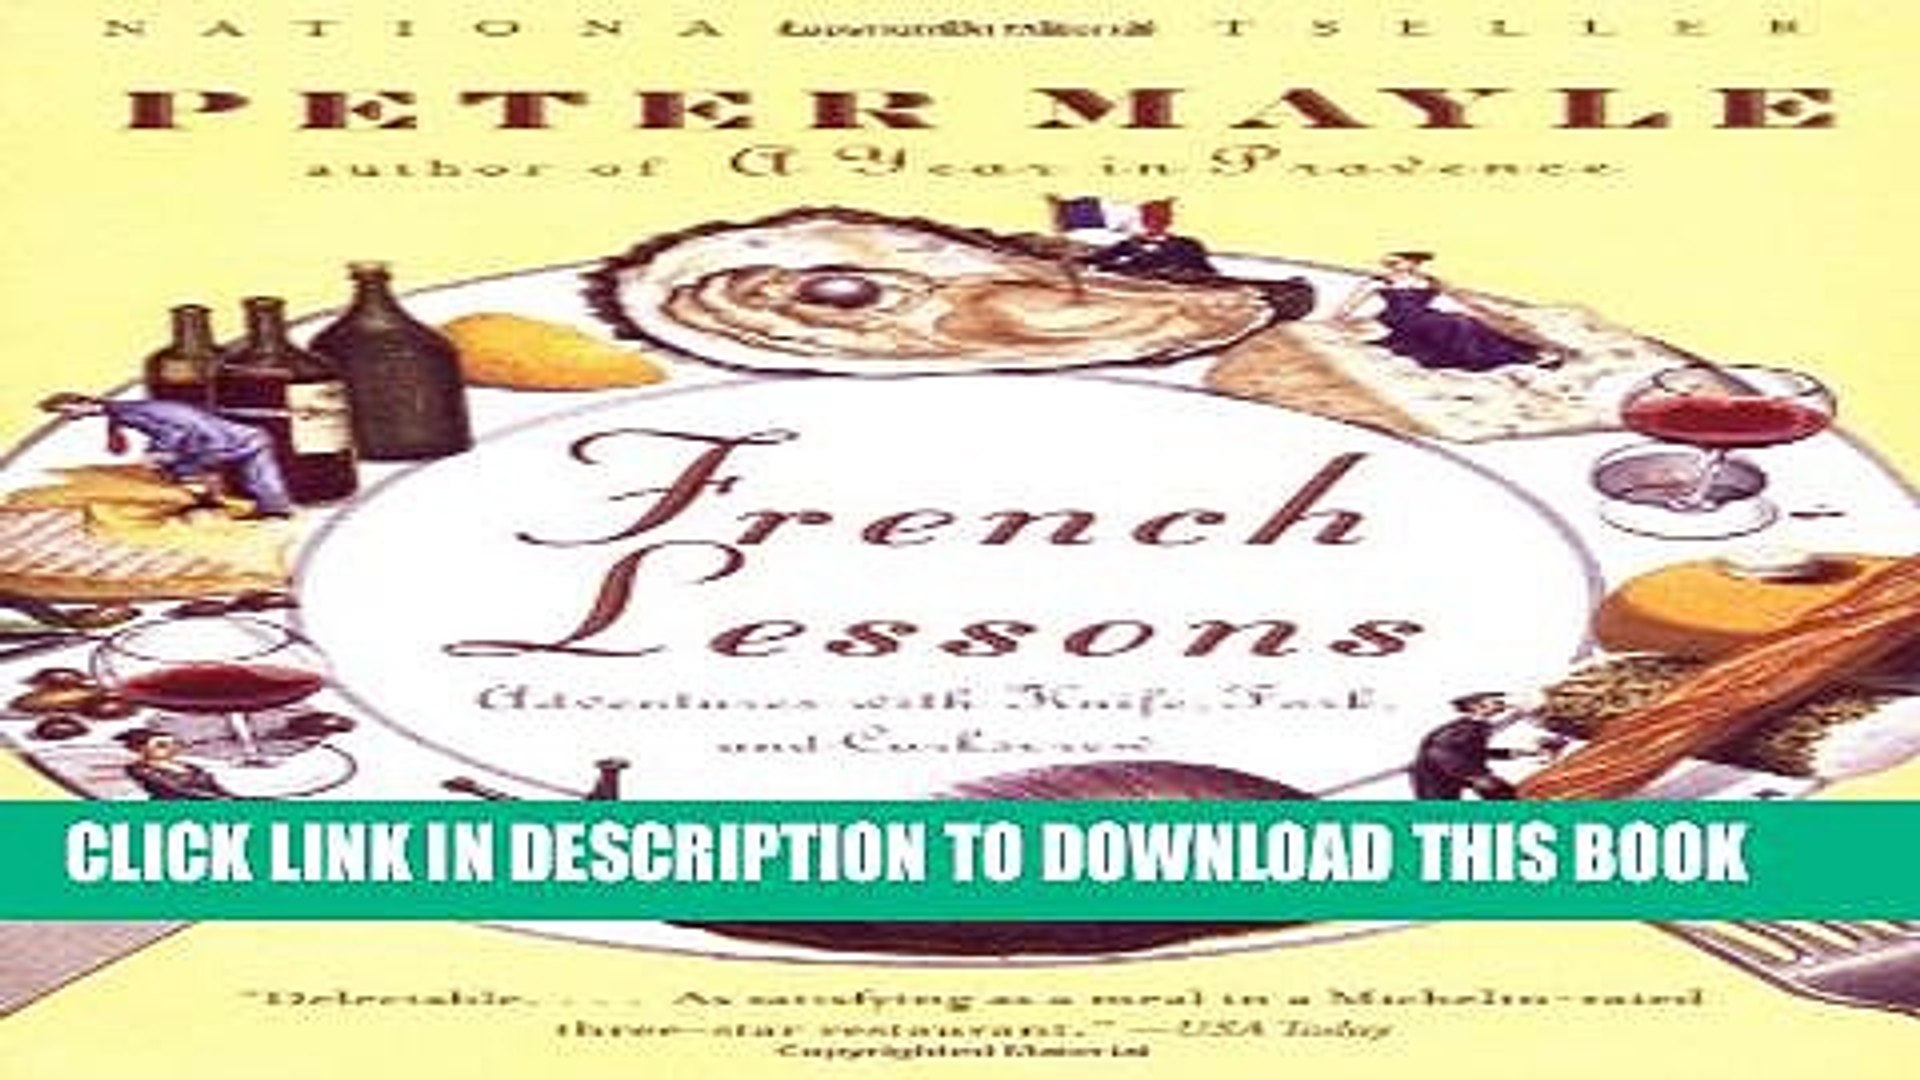 [PDF] French Lessons: Adventures with Knife, Fork, and Corkscrew Popular Online[PDF] French